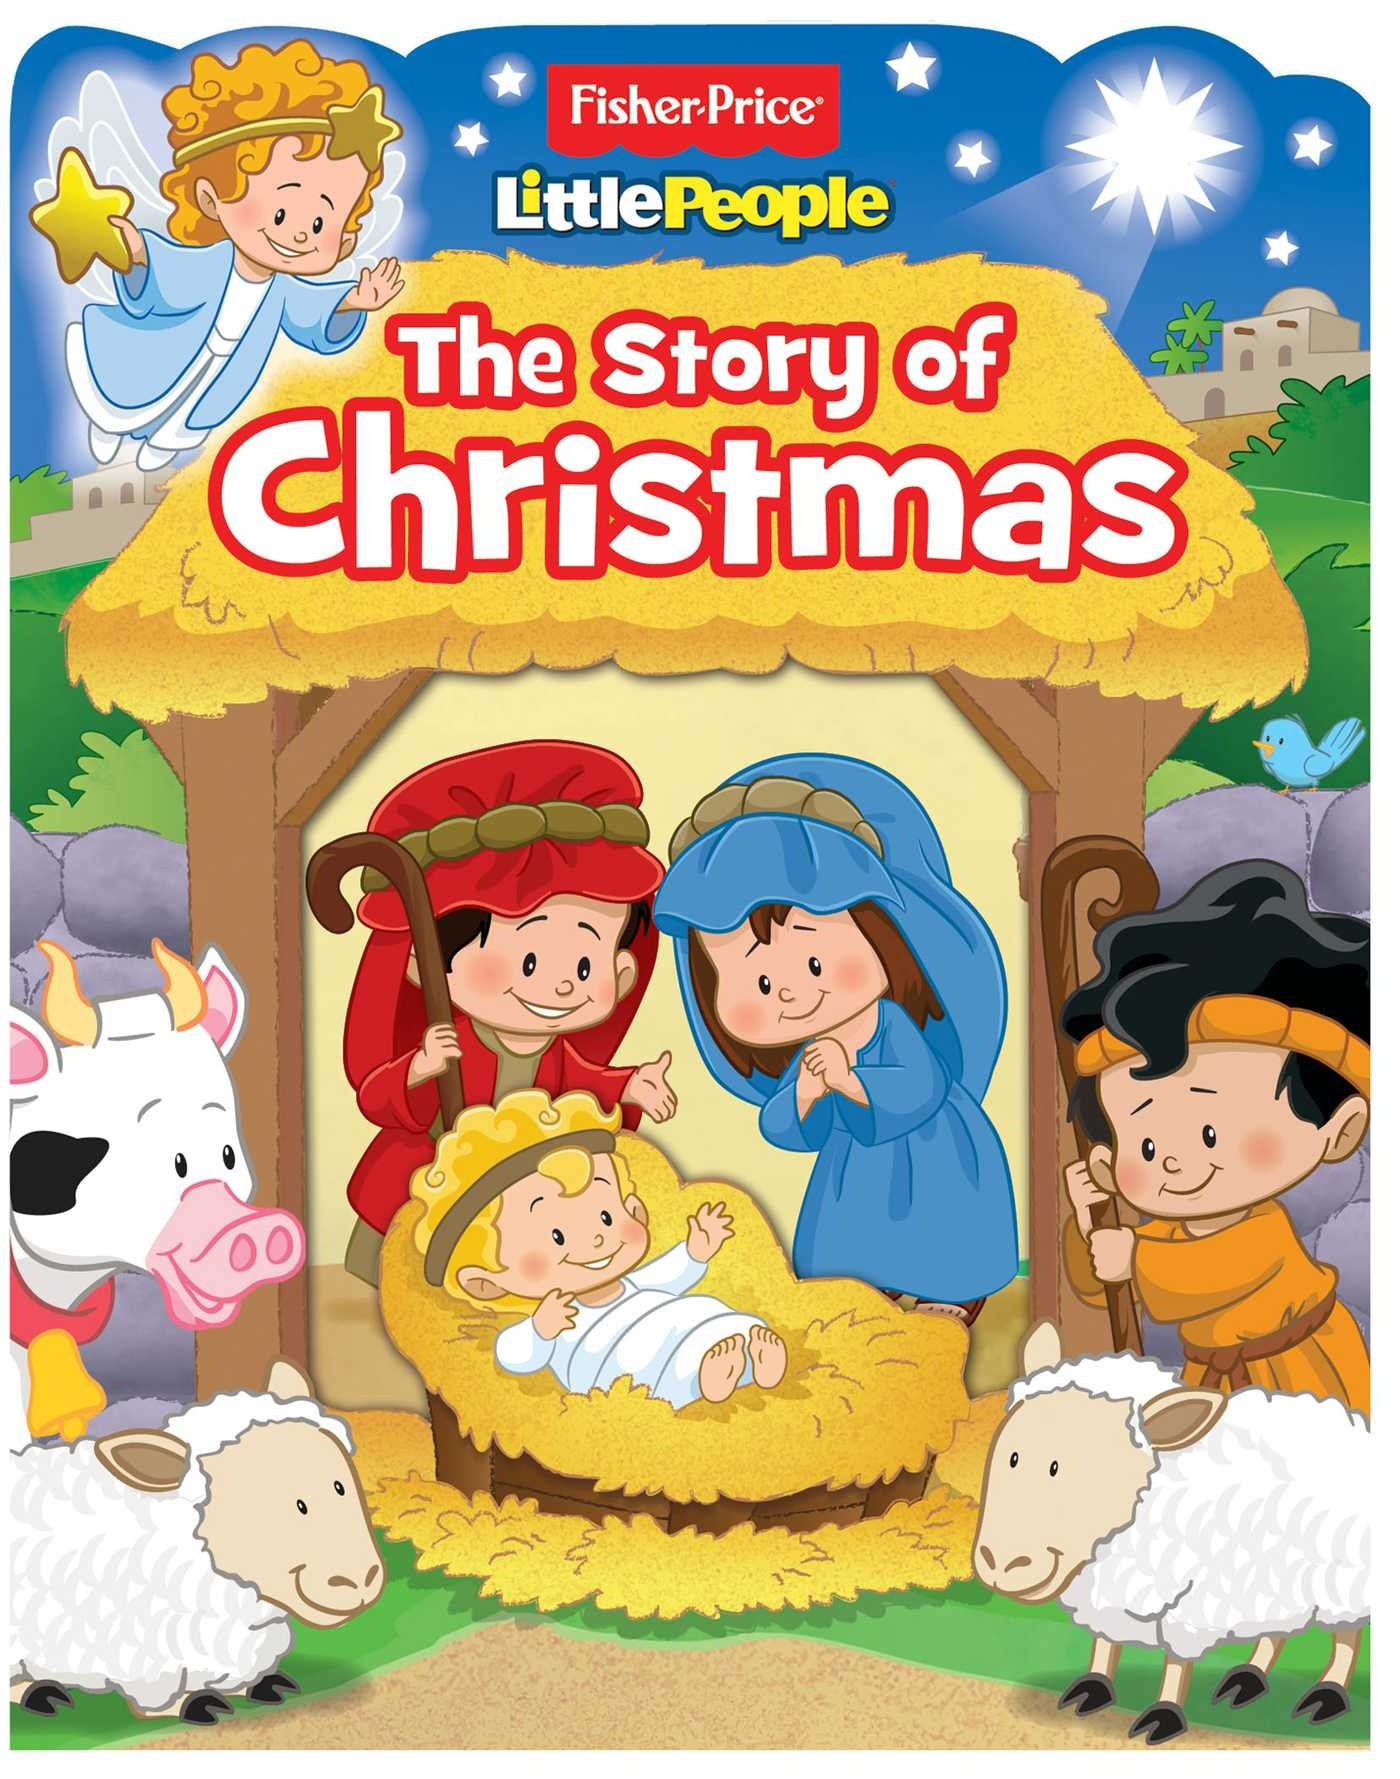 Fisher-Price Little People: The Story of Christmas (Boardbooks - Board Book)